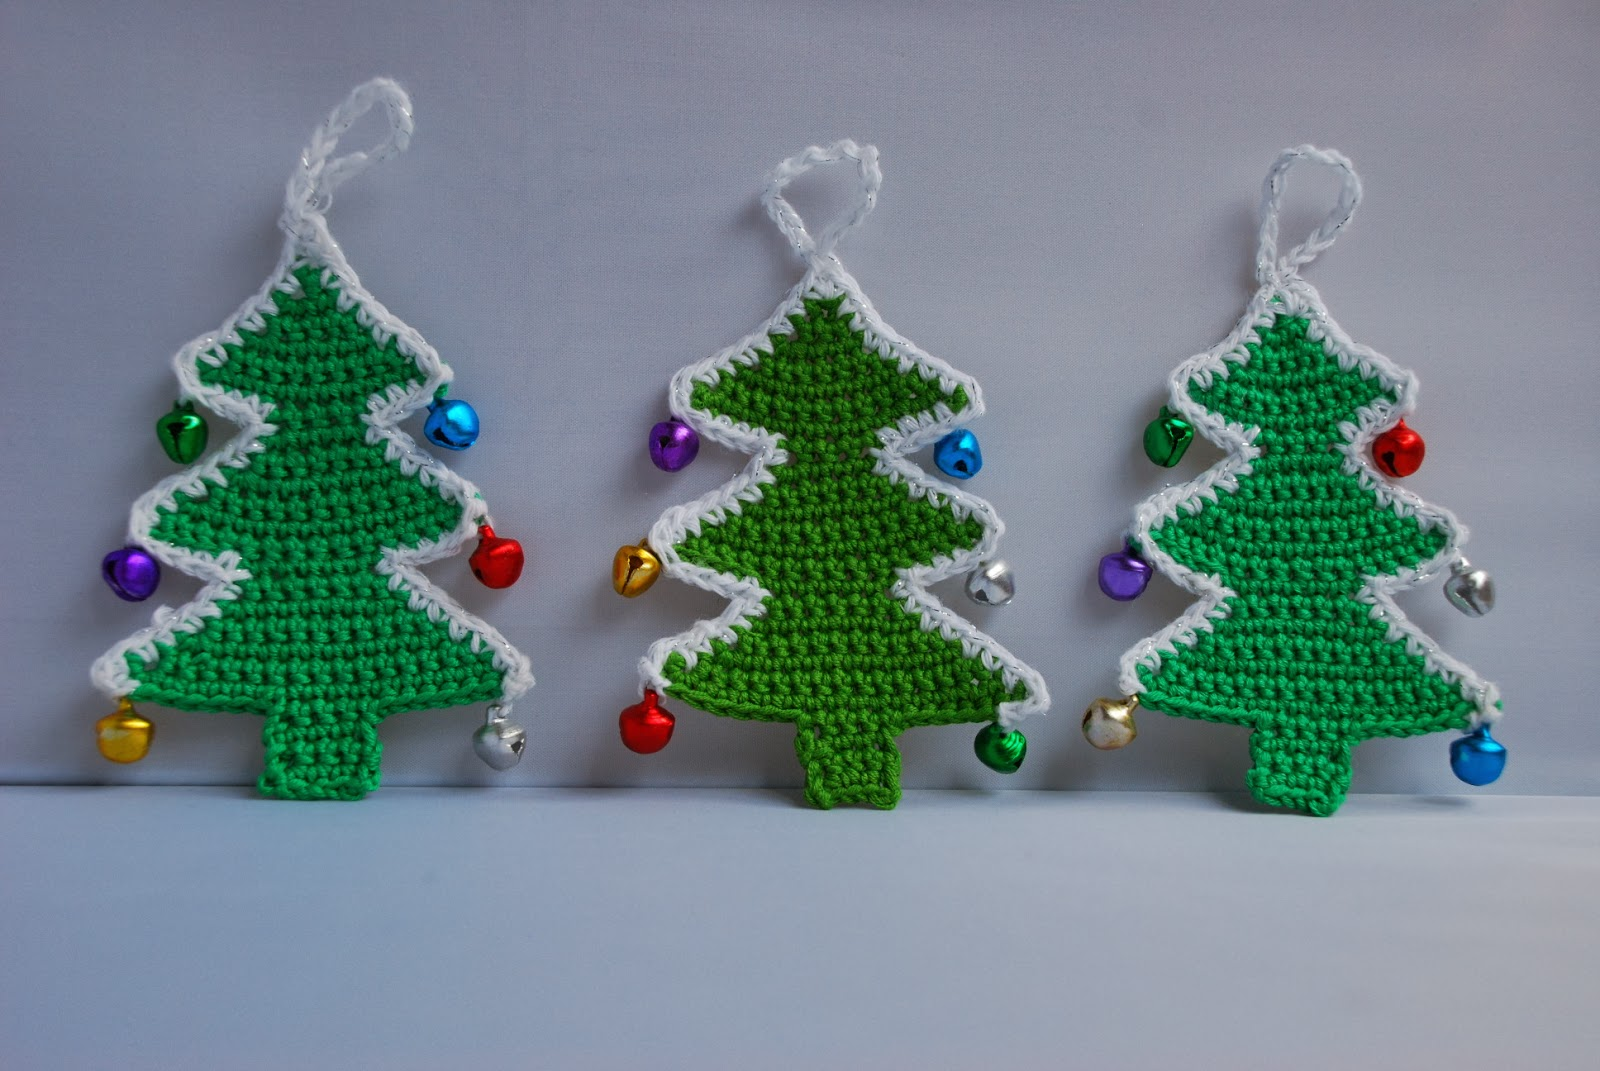 Crochet Christmas Tree Pattern And Tutorial Image Of Three Crocheted Trees